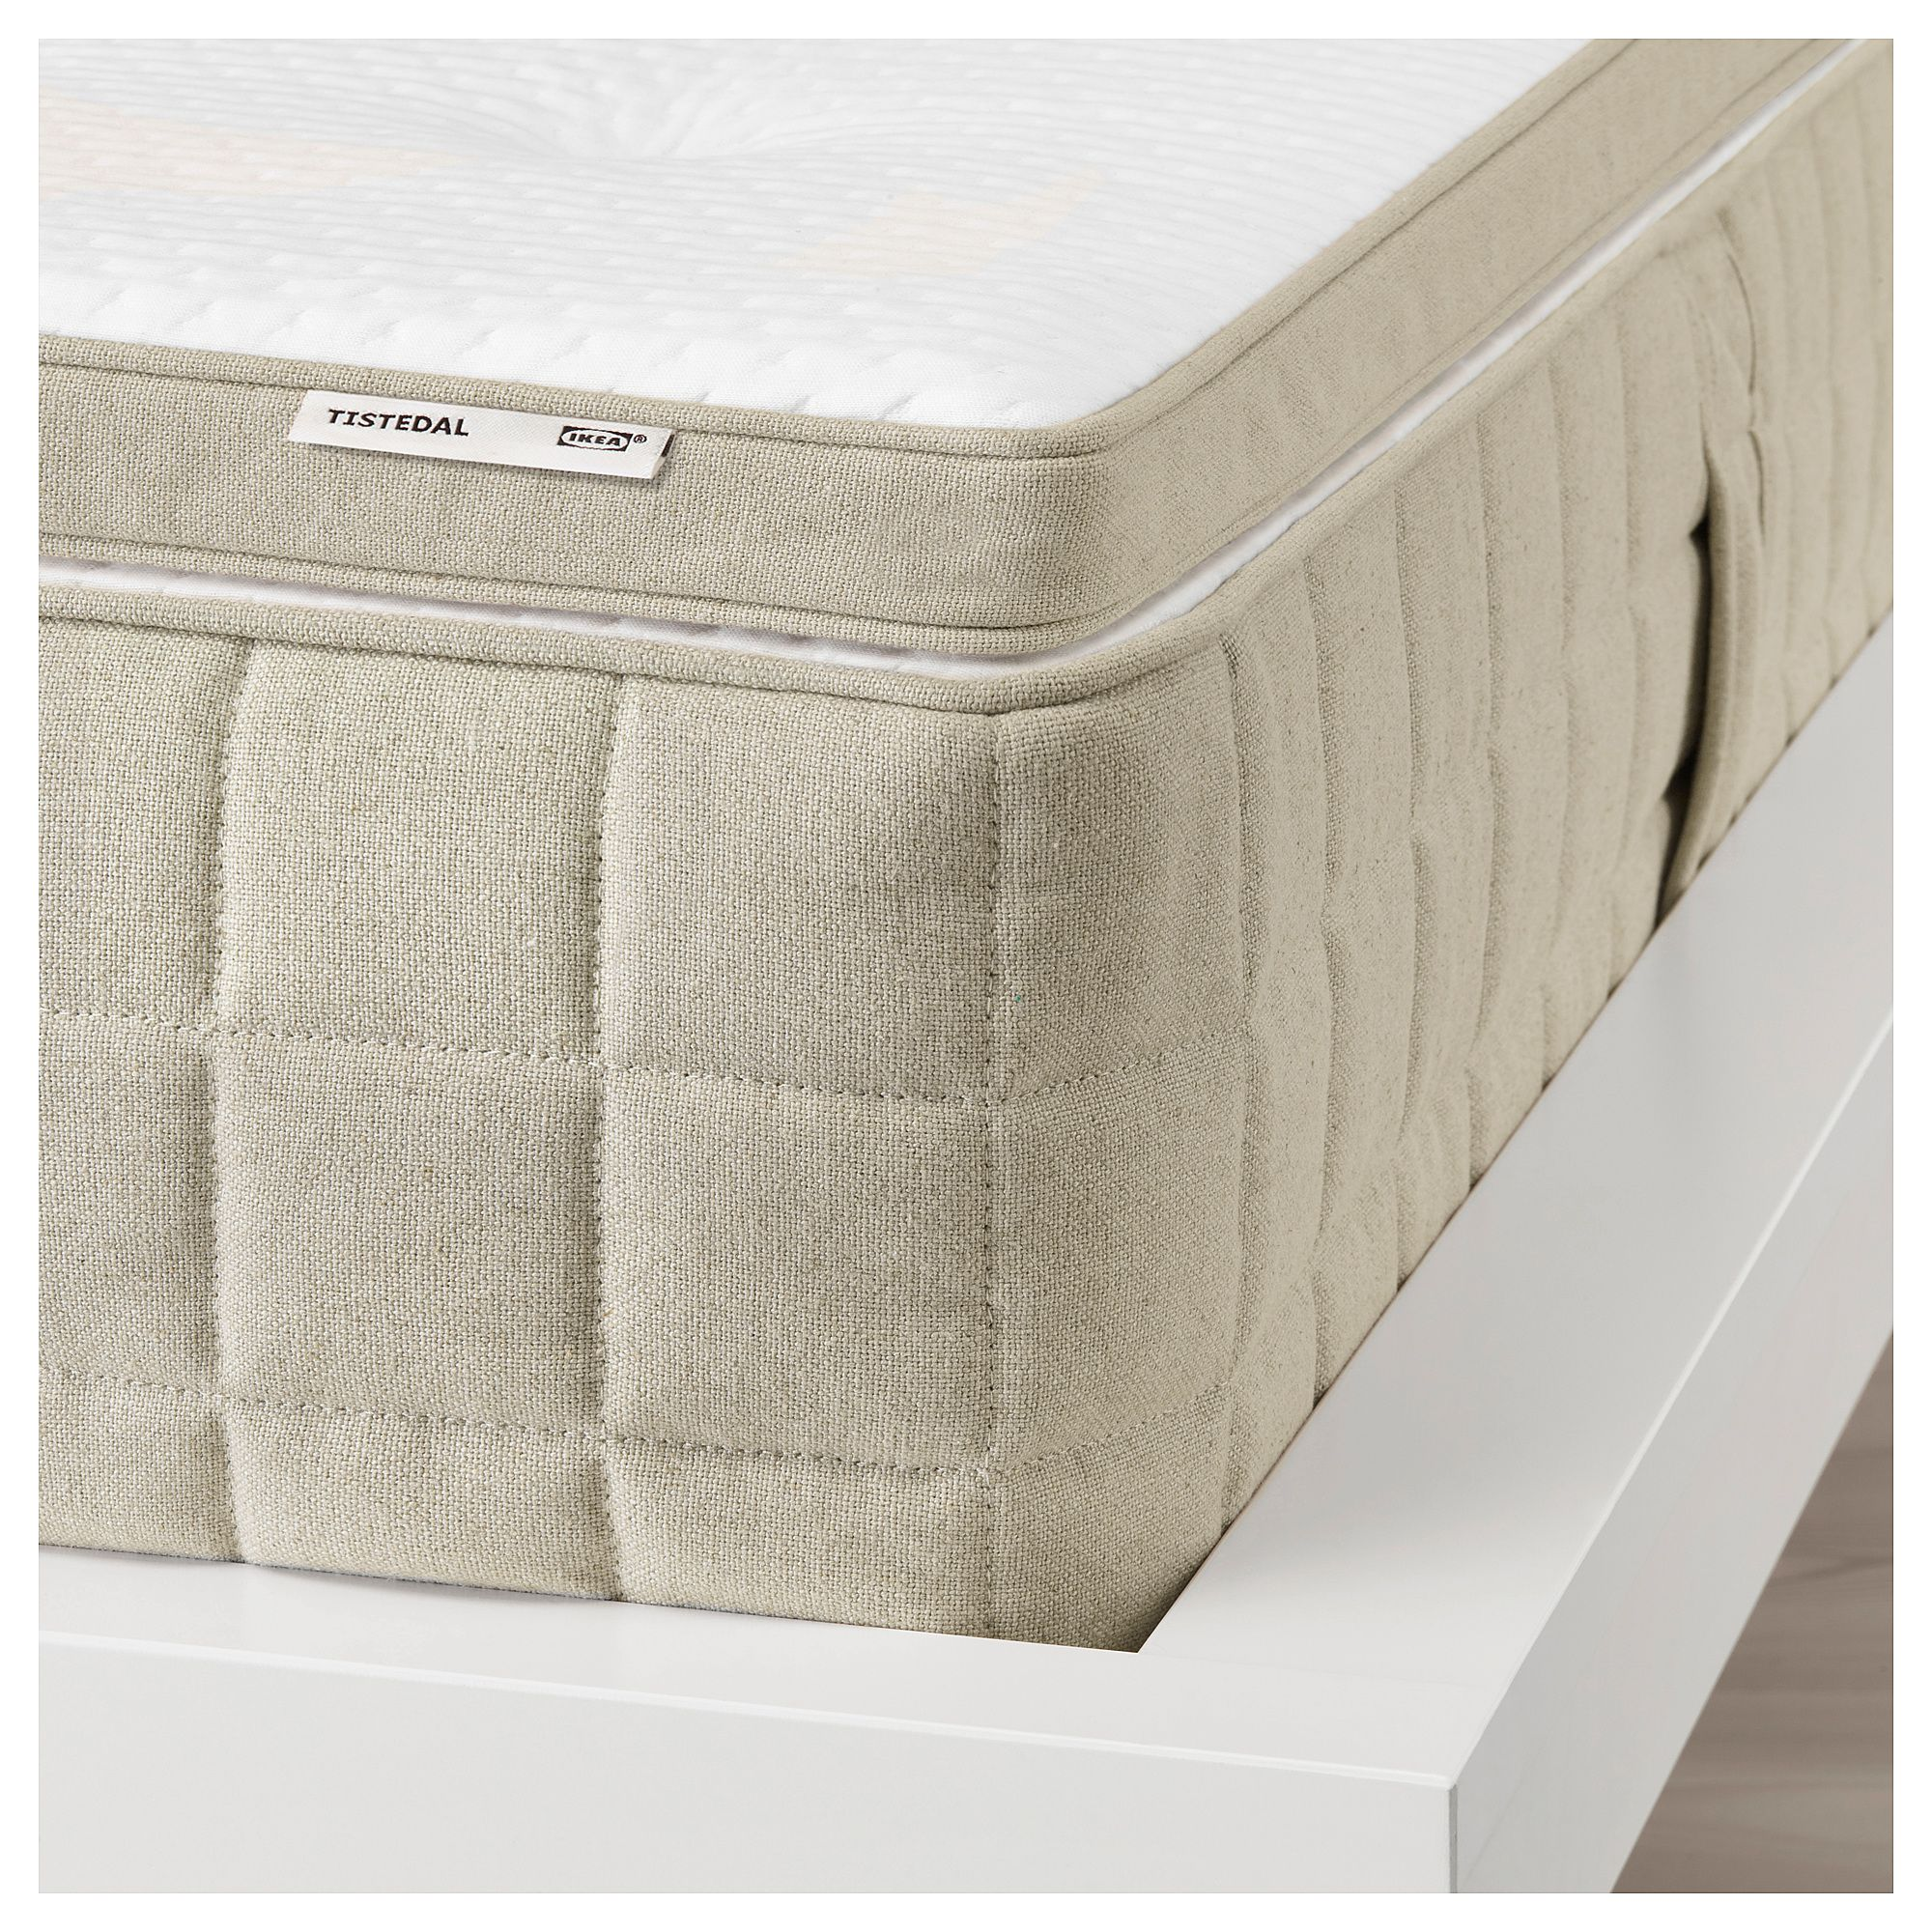 Tistedal Mattress Topper Natural Ikea In 2019 Best